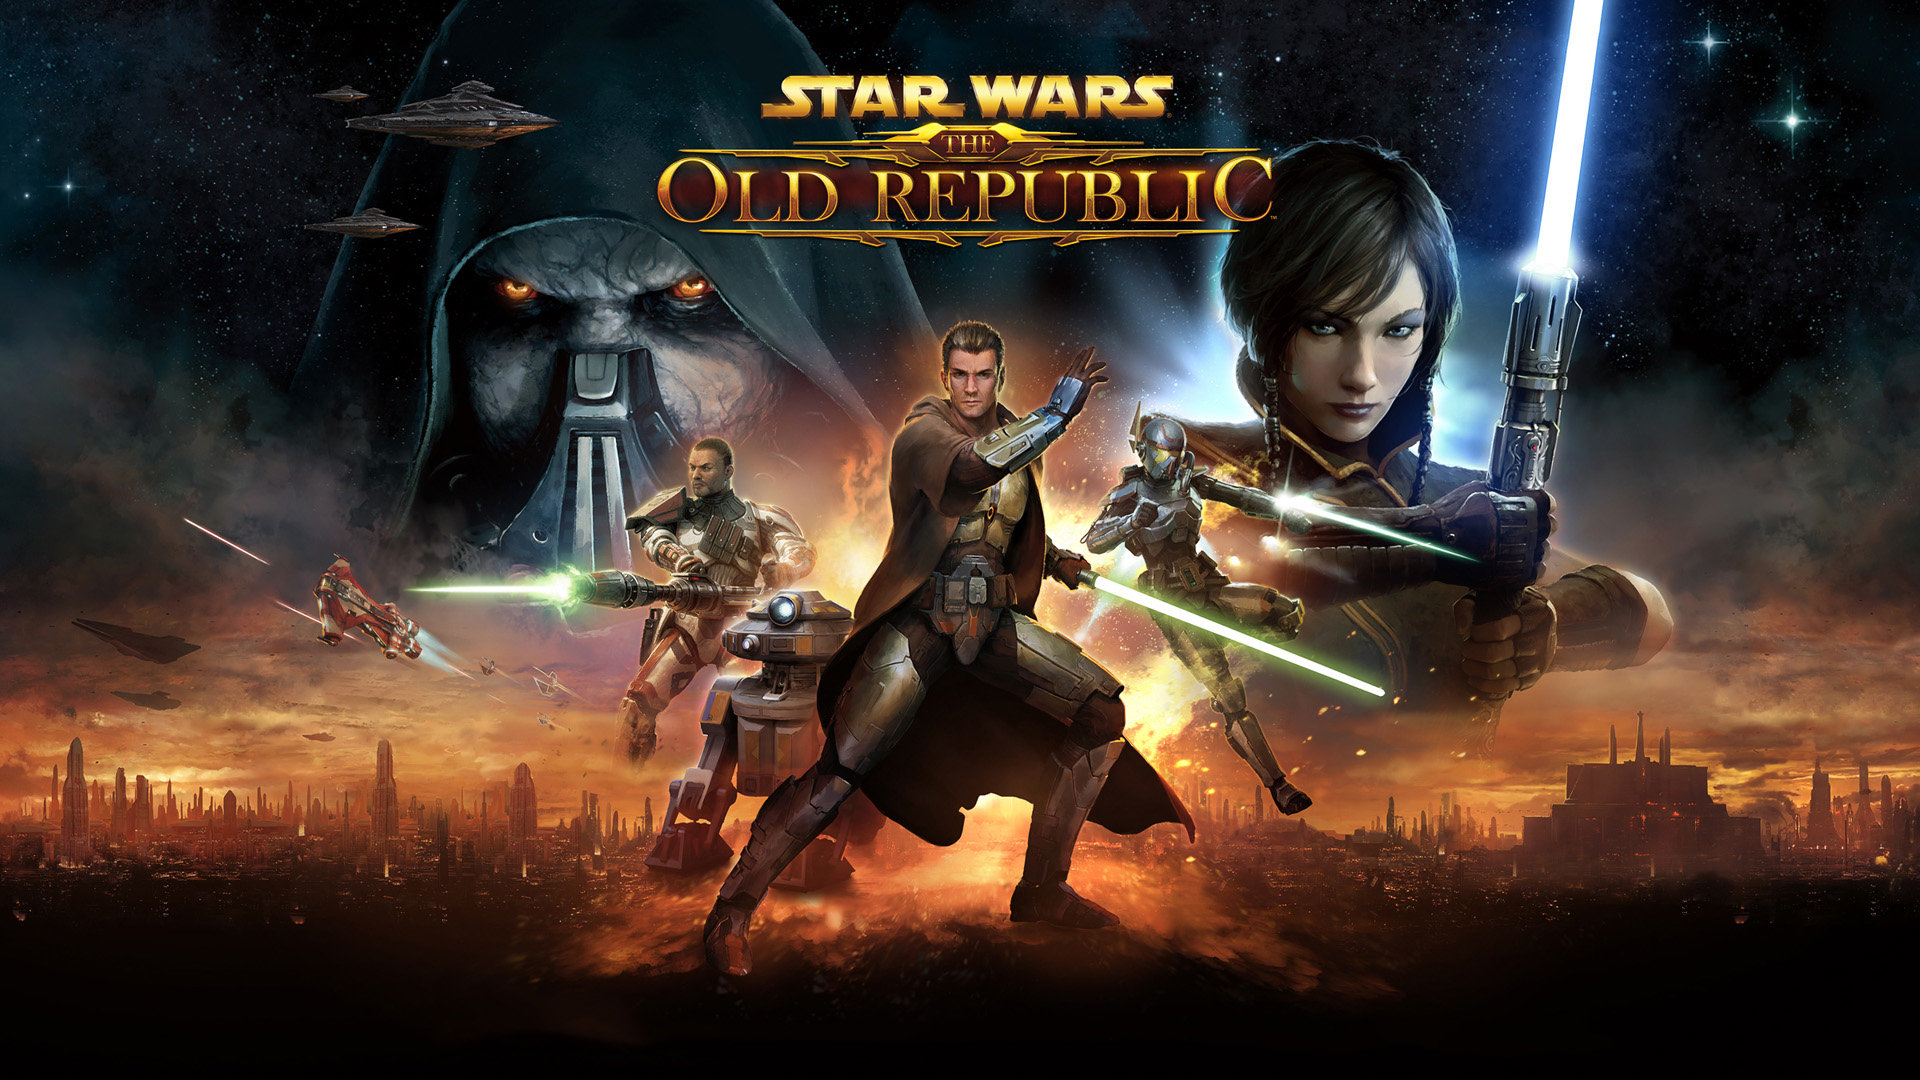 Awesome Star Wars The Old Republic Free Wallpaper ID105952 For Hd 1080p Computer